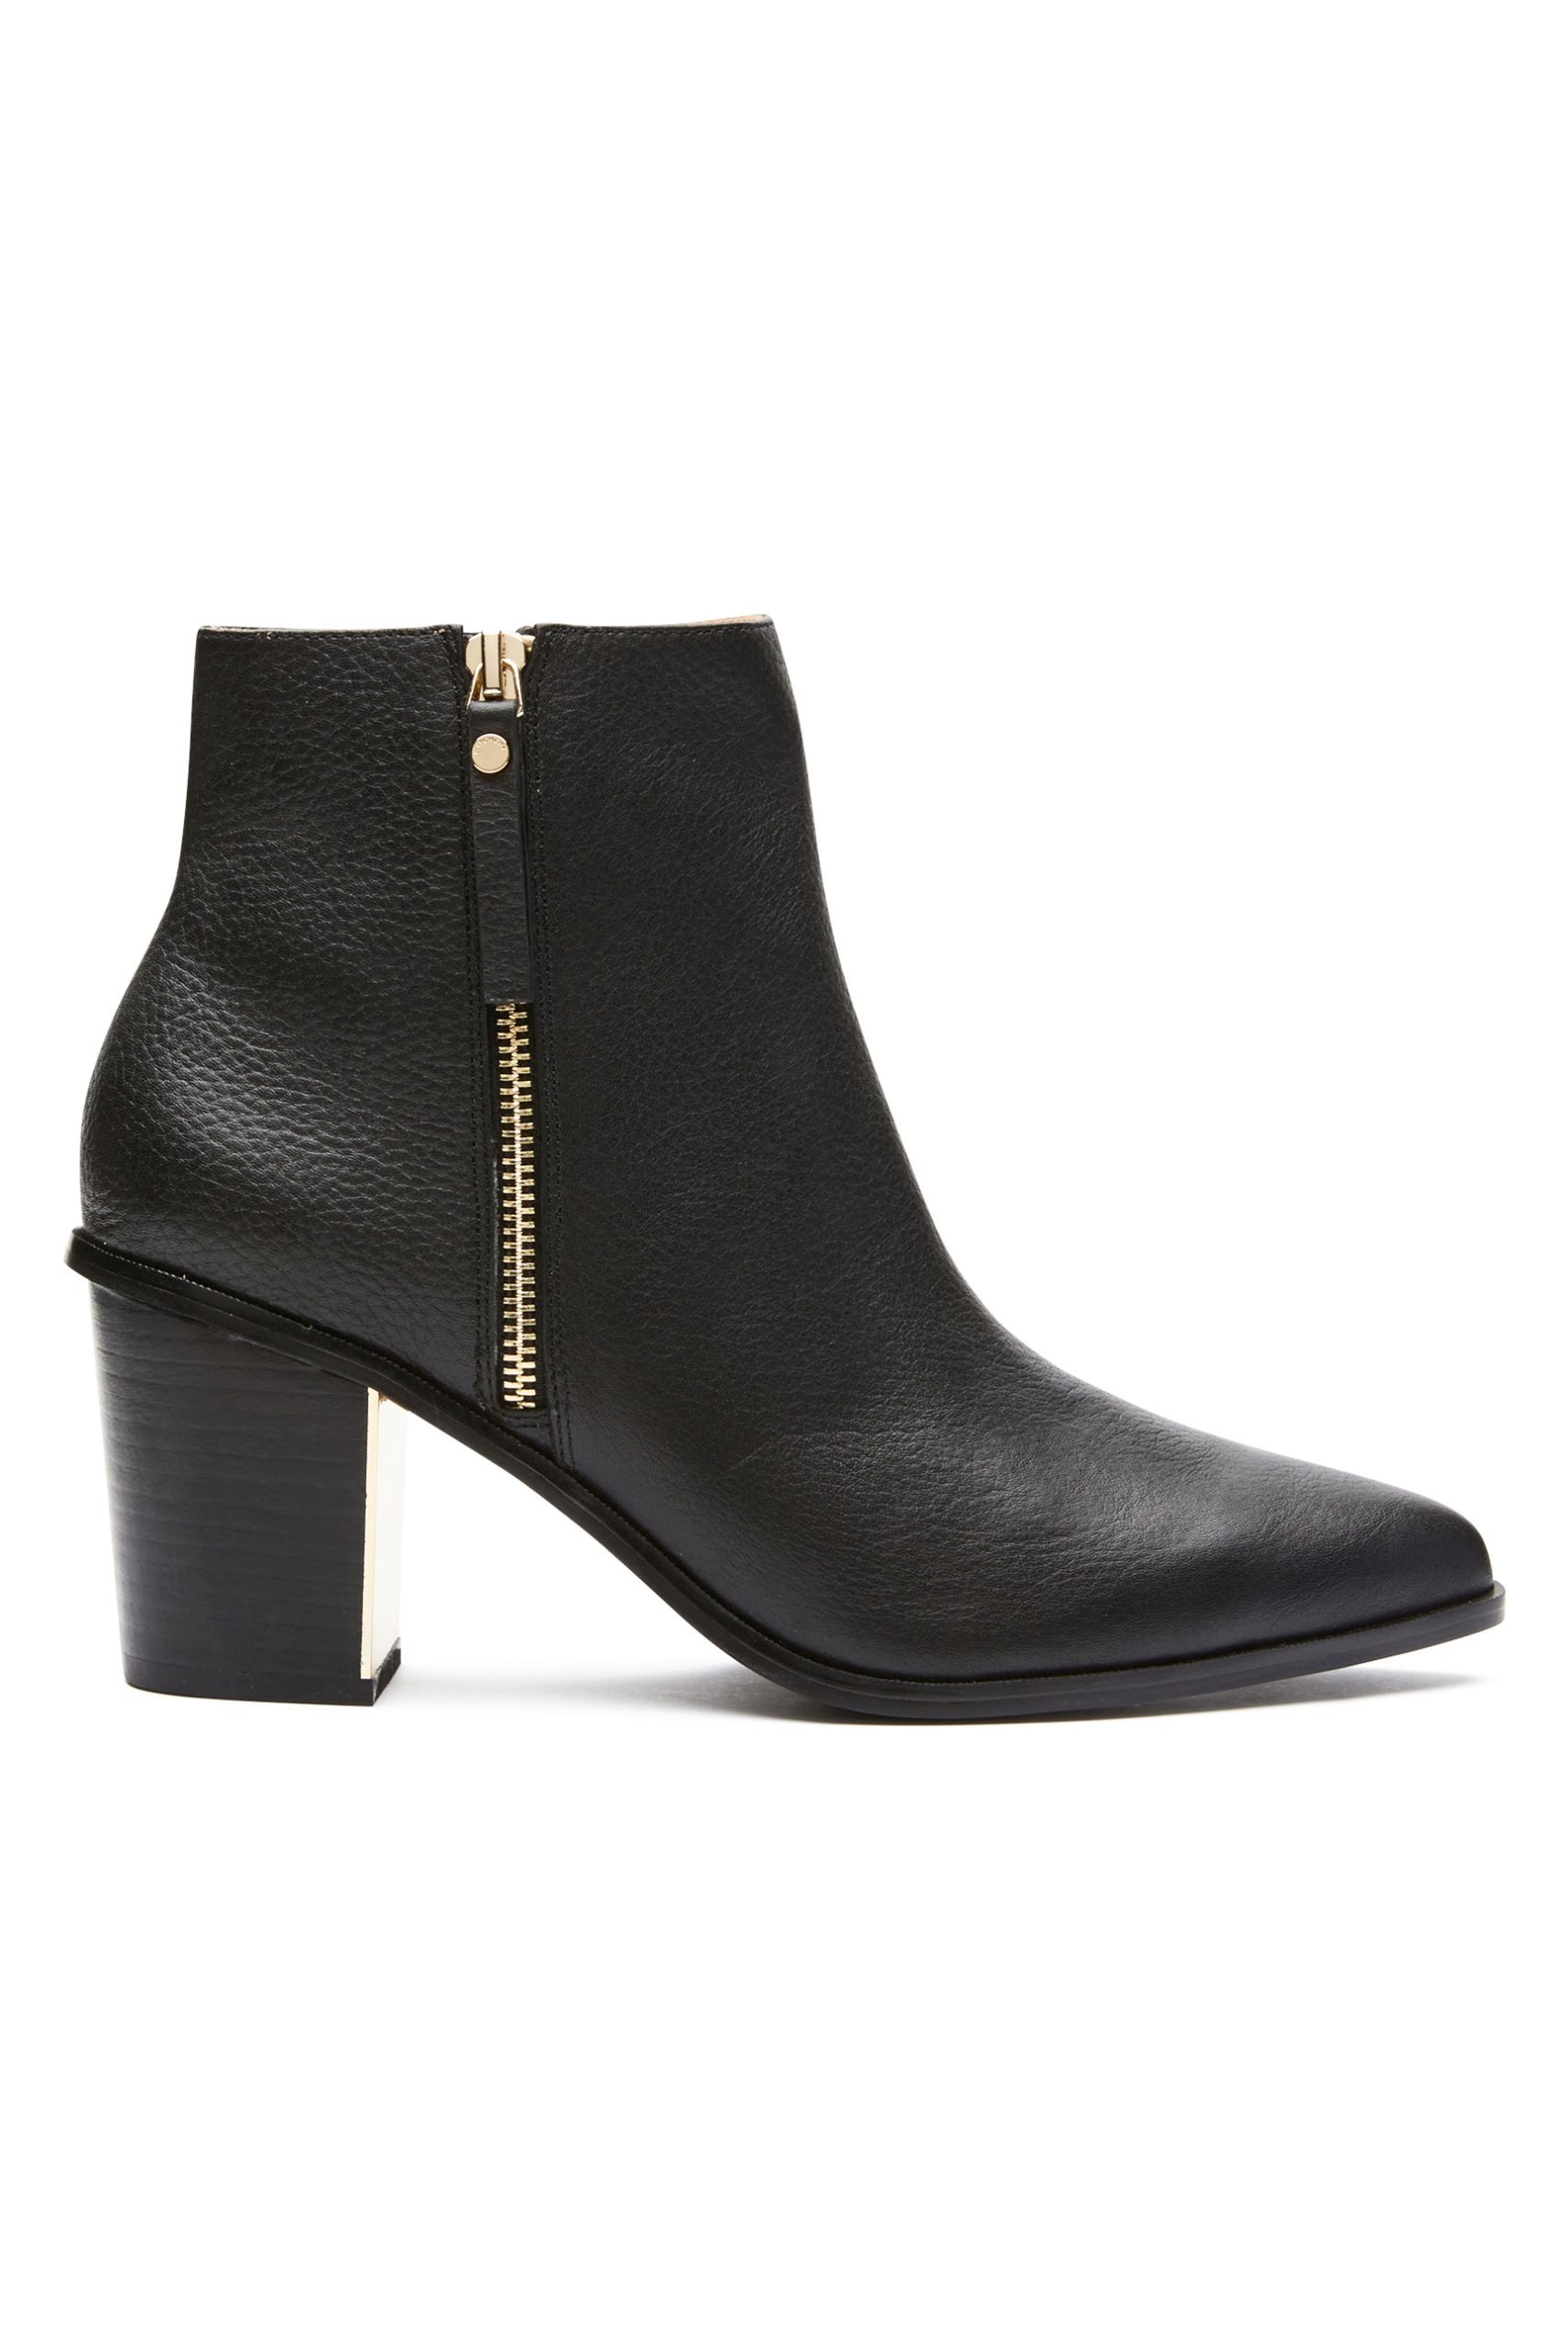 60212286_Witchery Kaylee Ankle Boot, RRP$259.90